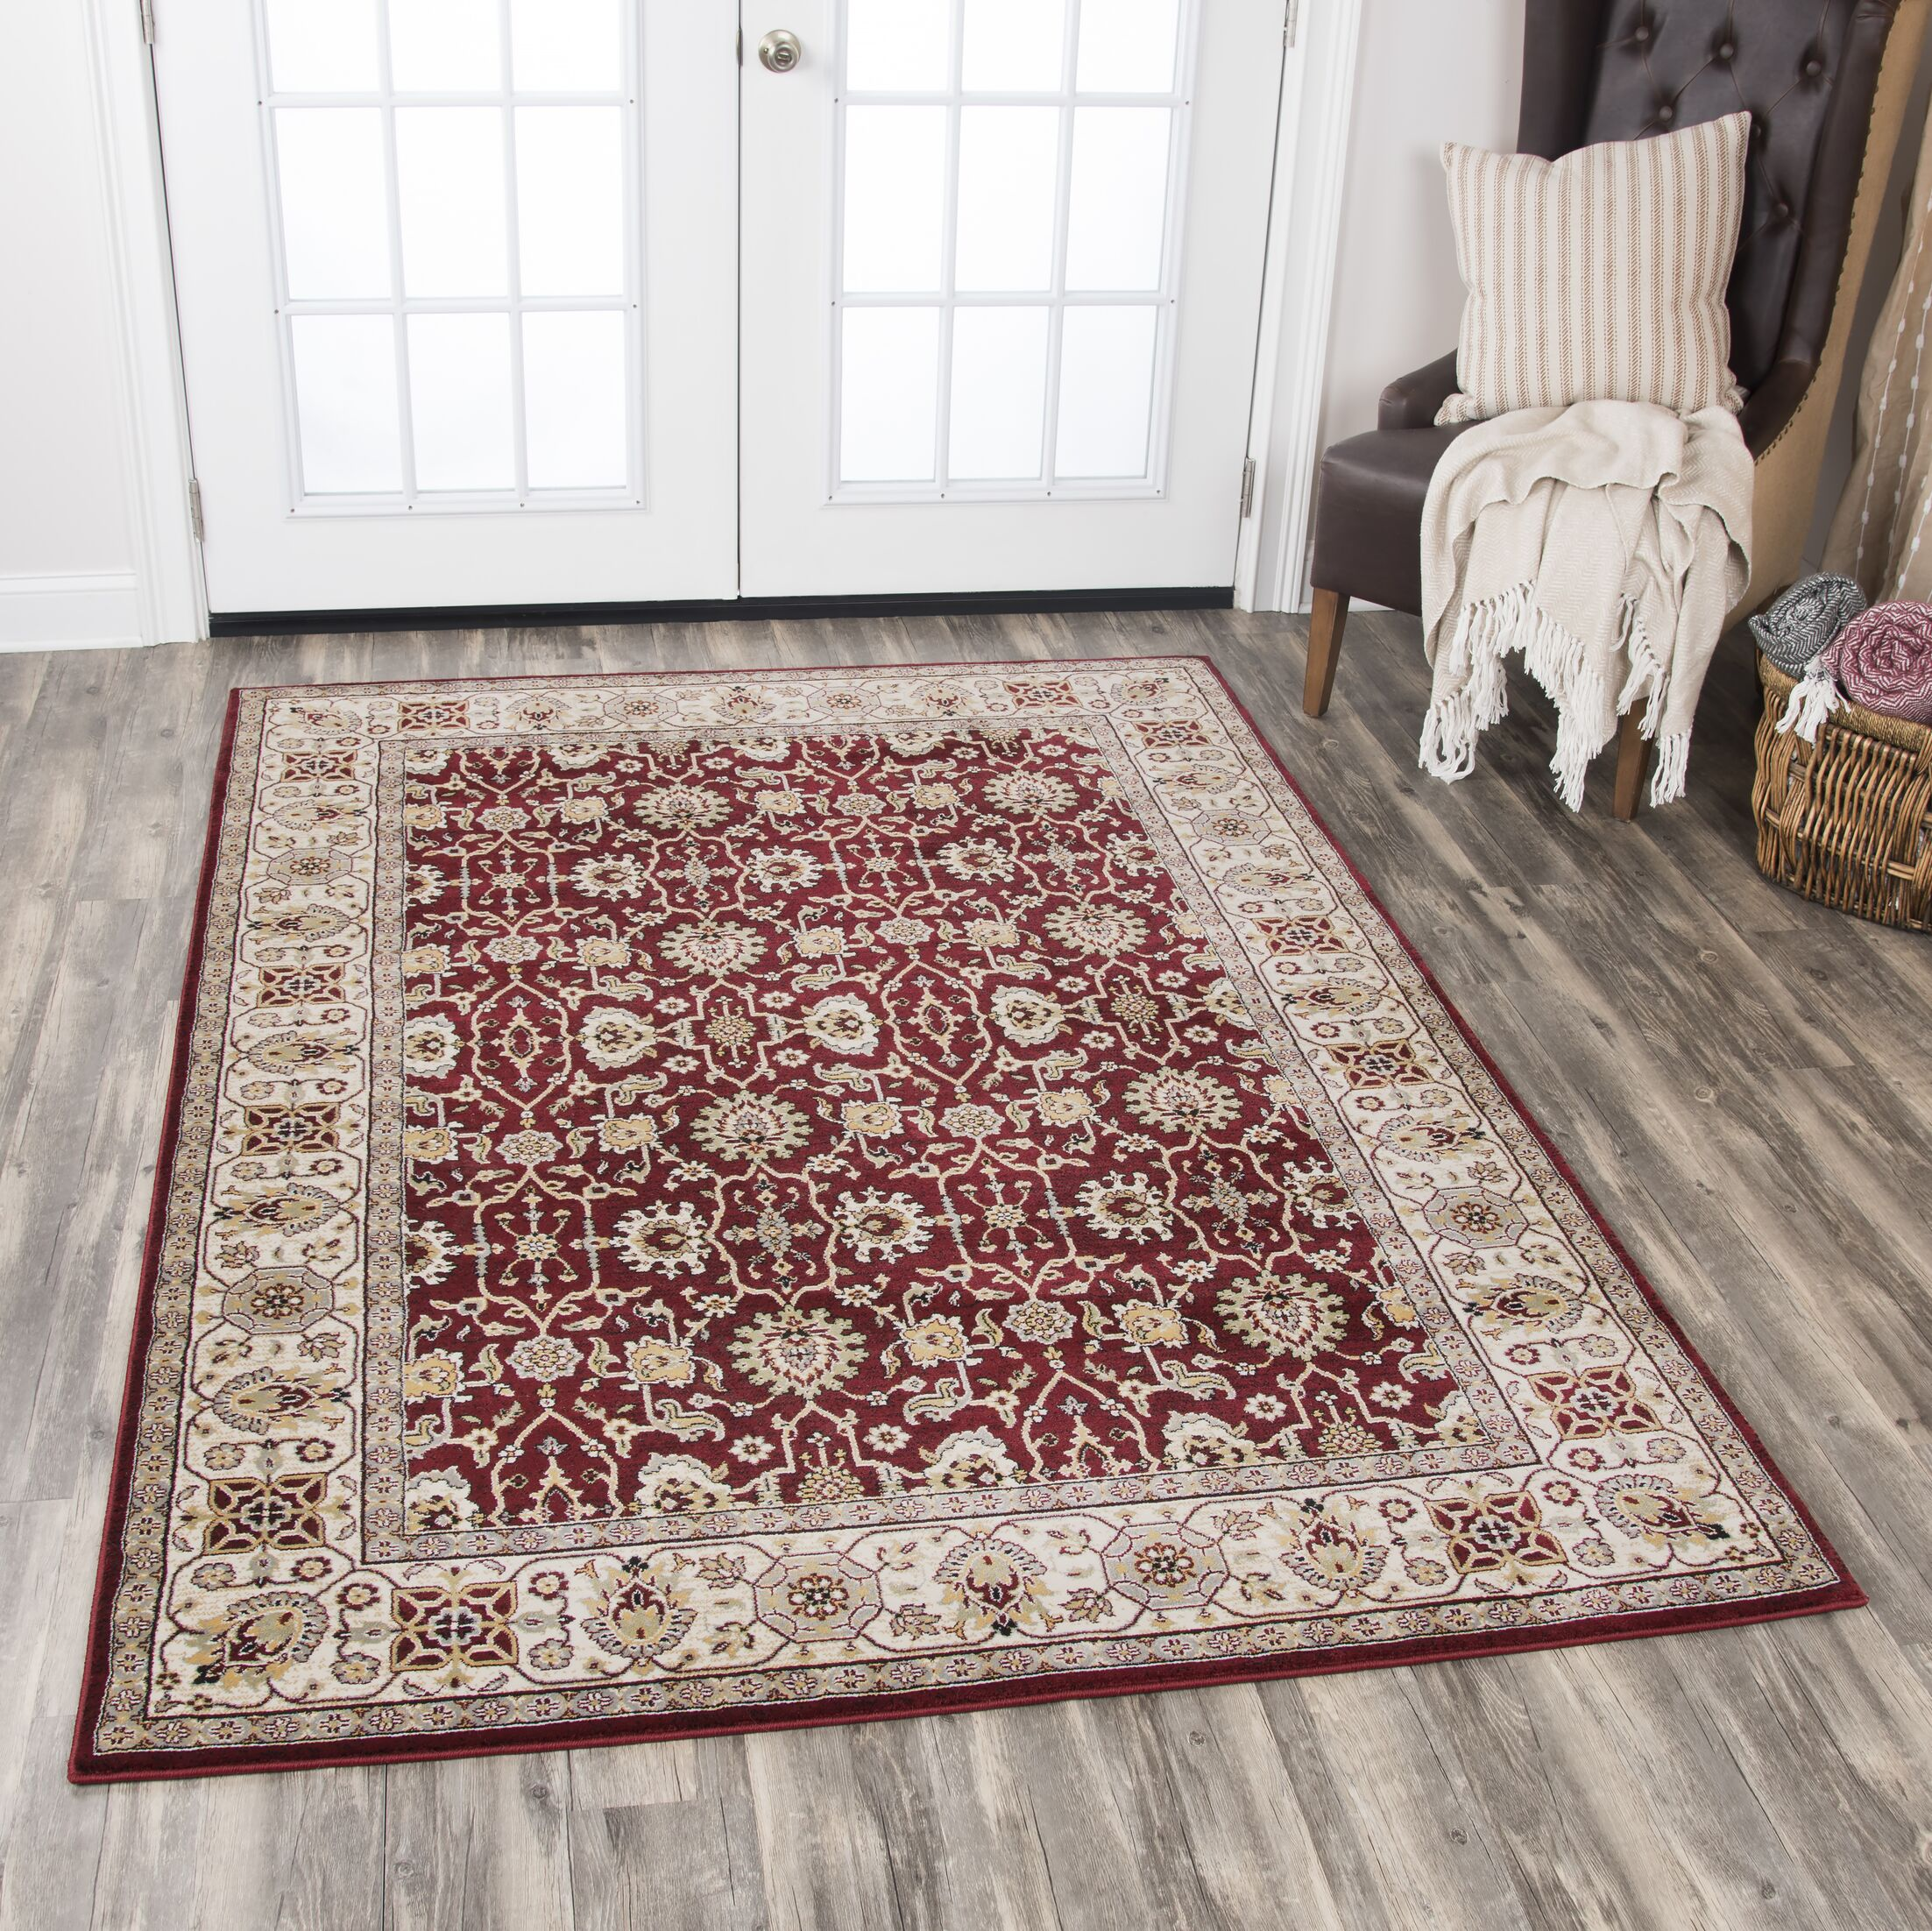 Adkisson Red Area Rug Rug Size: Rectangle 7'10